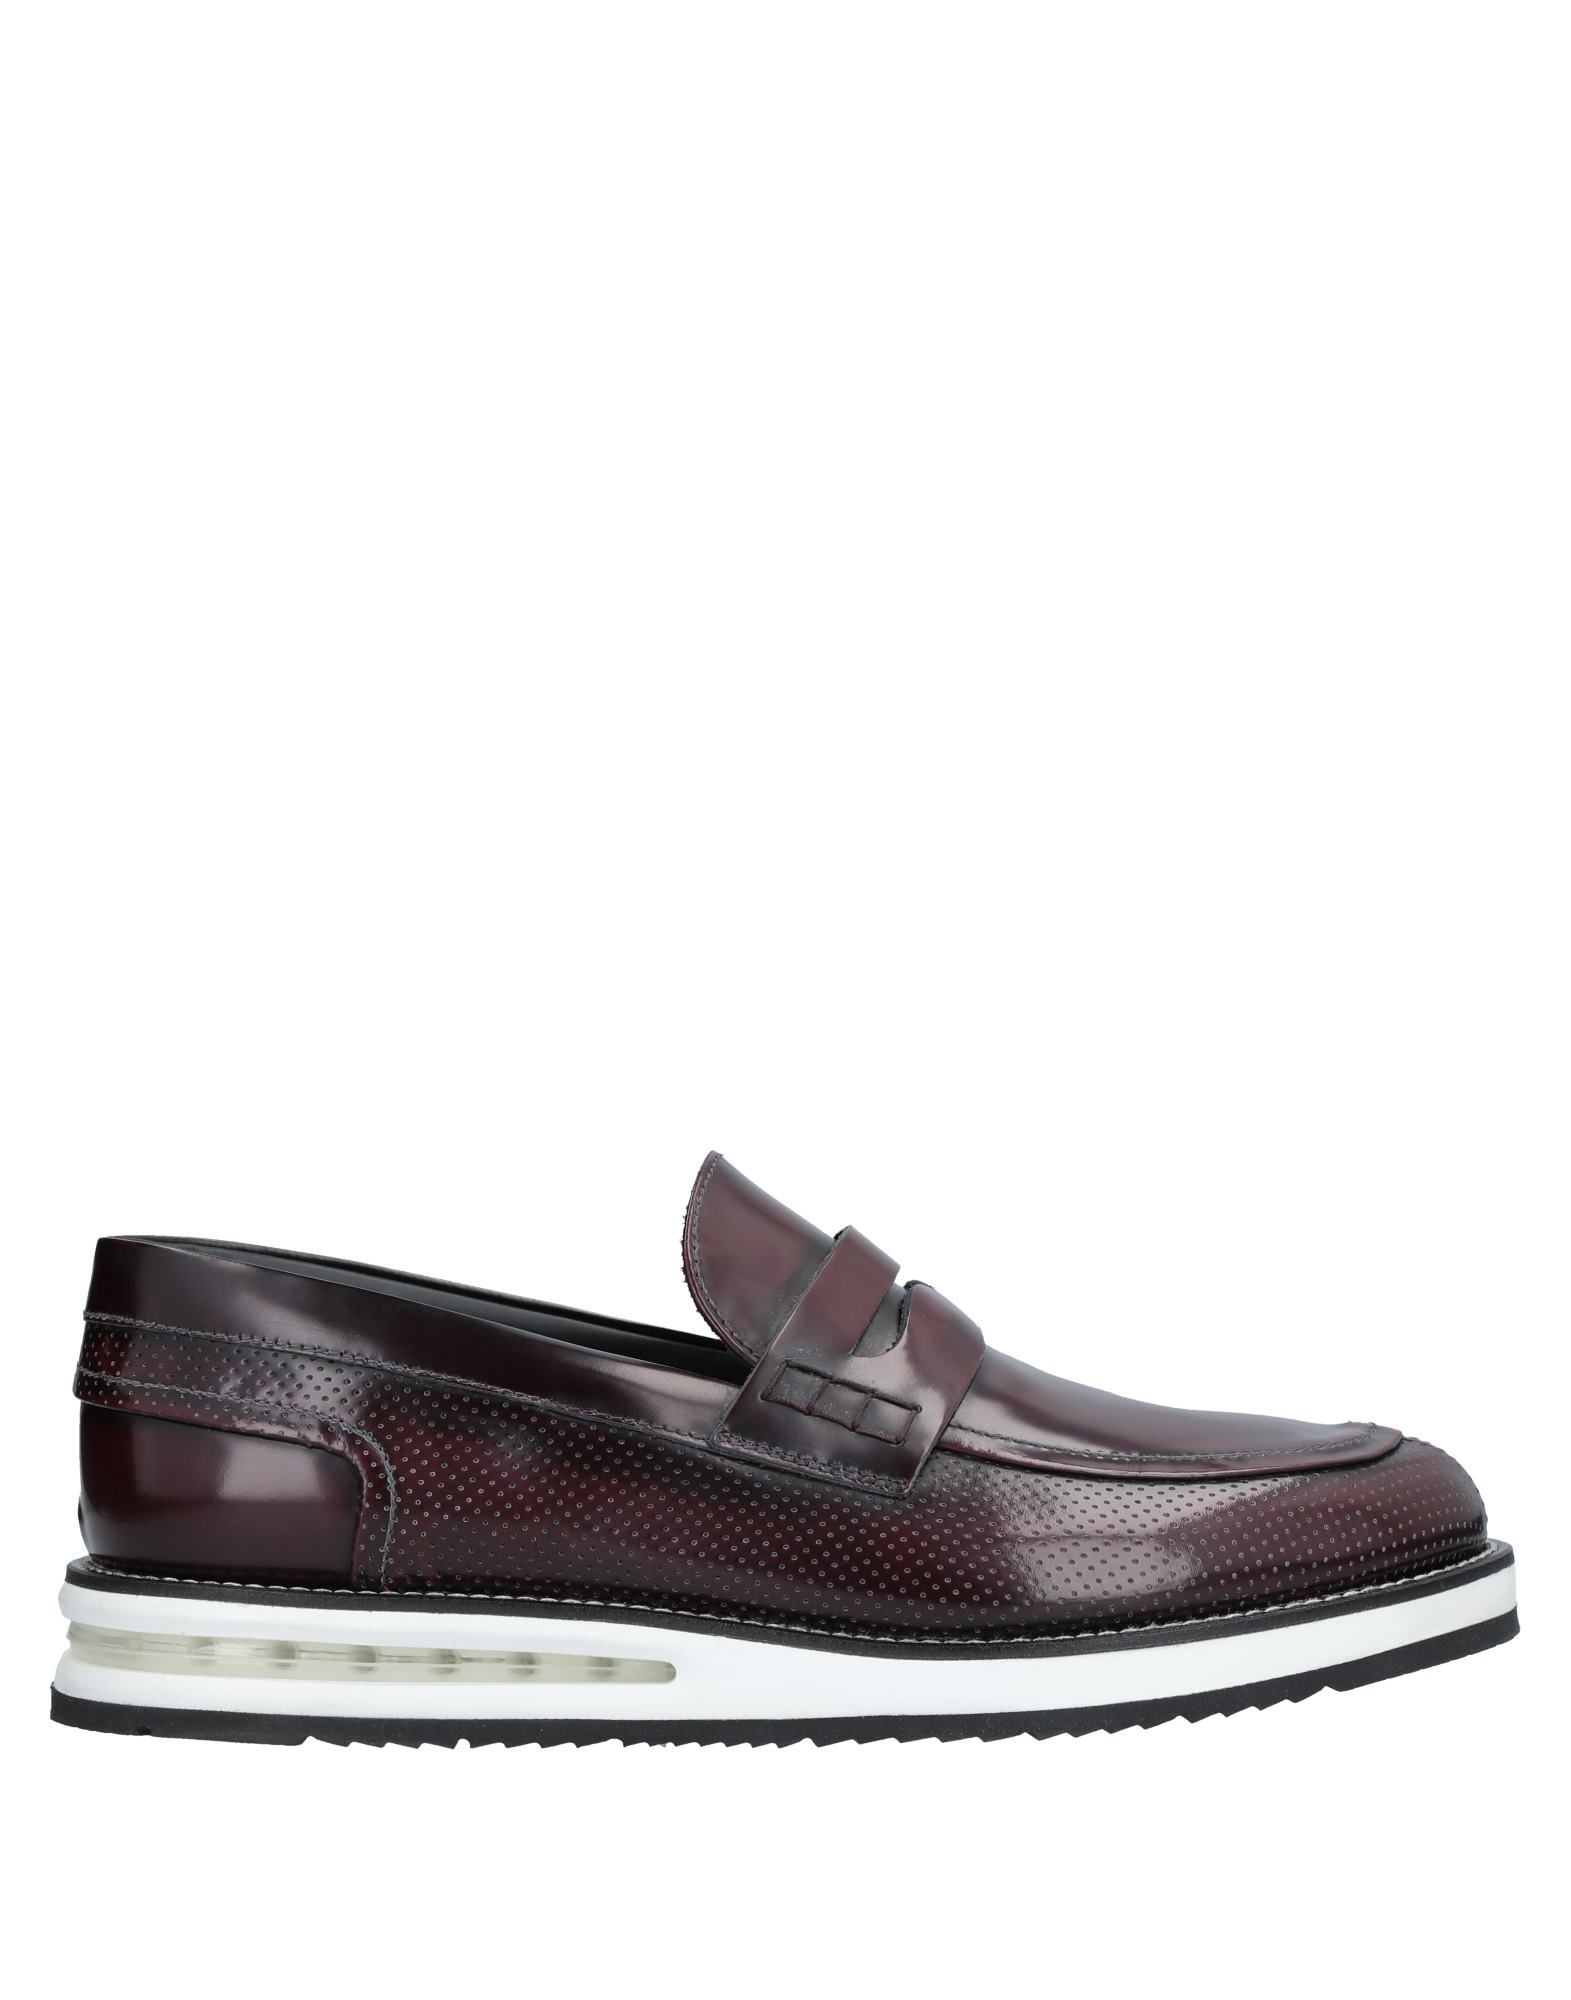 BARLEYCORN Loafers in Deep Purple